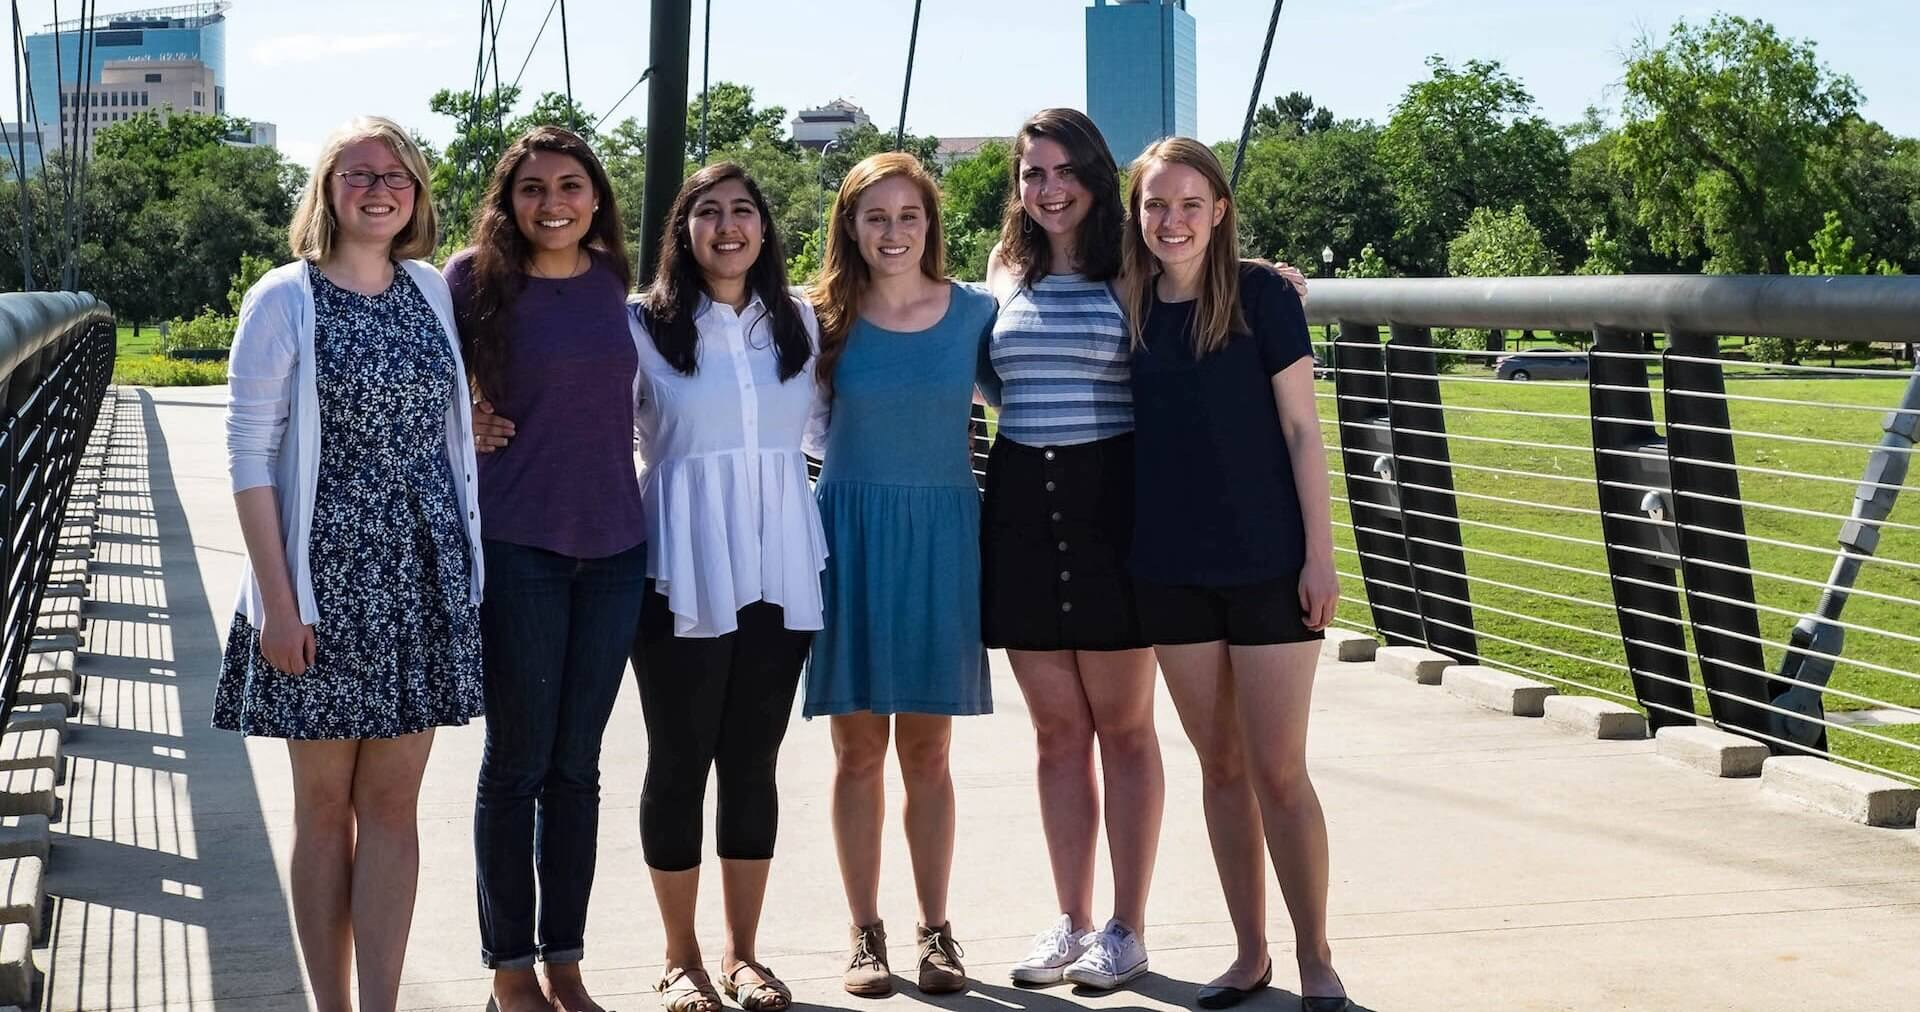 Rice University senior engineering students have developed enhancements to the ongoing Project Brays to alleviate flooding in Houston. Gathered on a footbridge over Brays Bayou are, from left, Kasia Nikiel, Avi Gori, Jinal Mehta, Julianne Crawford, Marie Gleichauf and Sam Greivell.